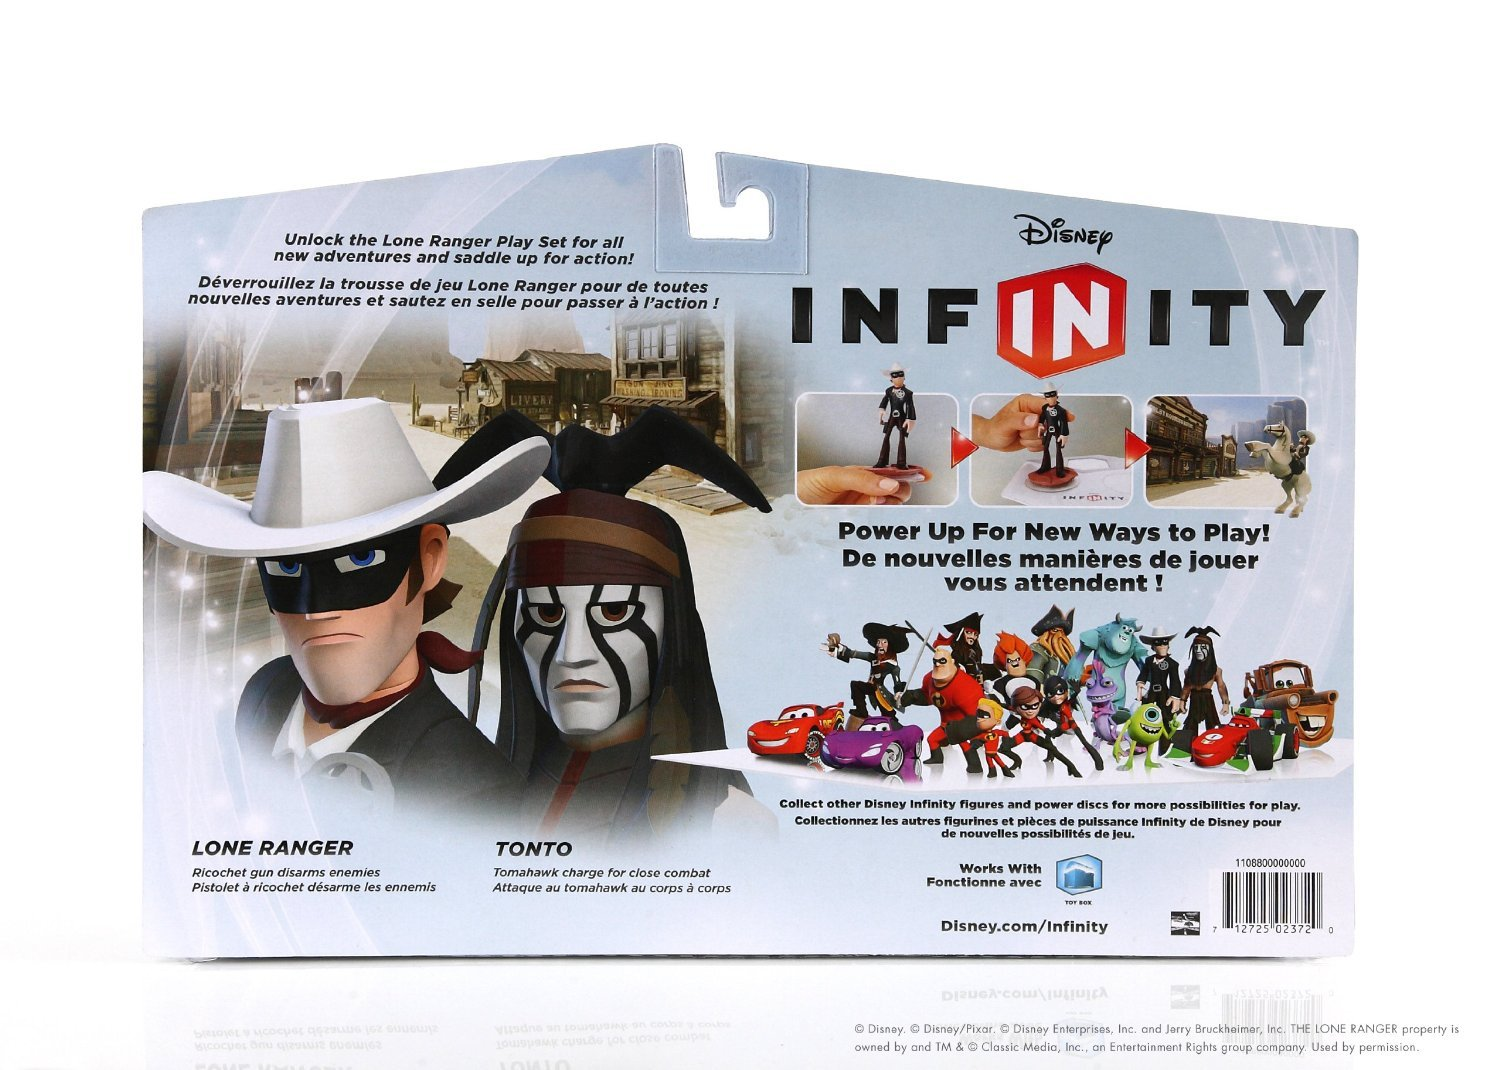 Disney Infinity Playset Pack Lone Ranger Ps3 Xbox 360 Wii U Wii 3ds Buy Now At